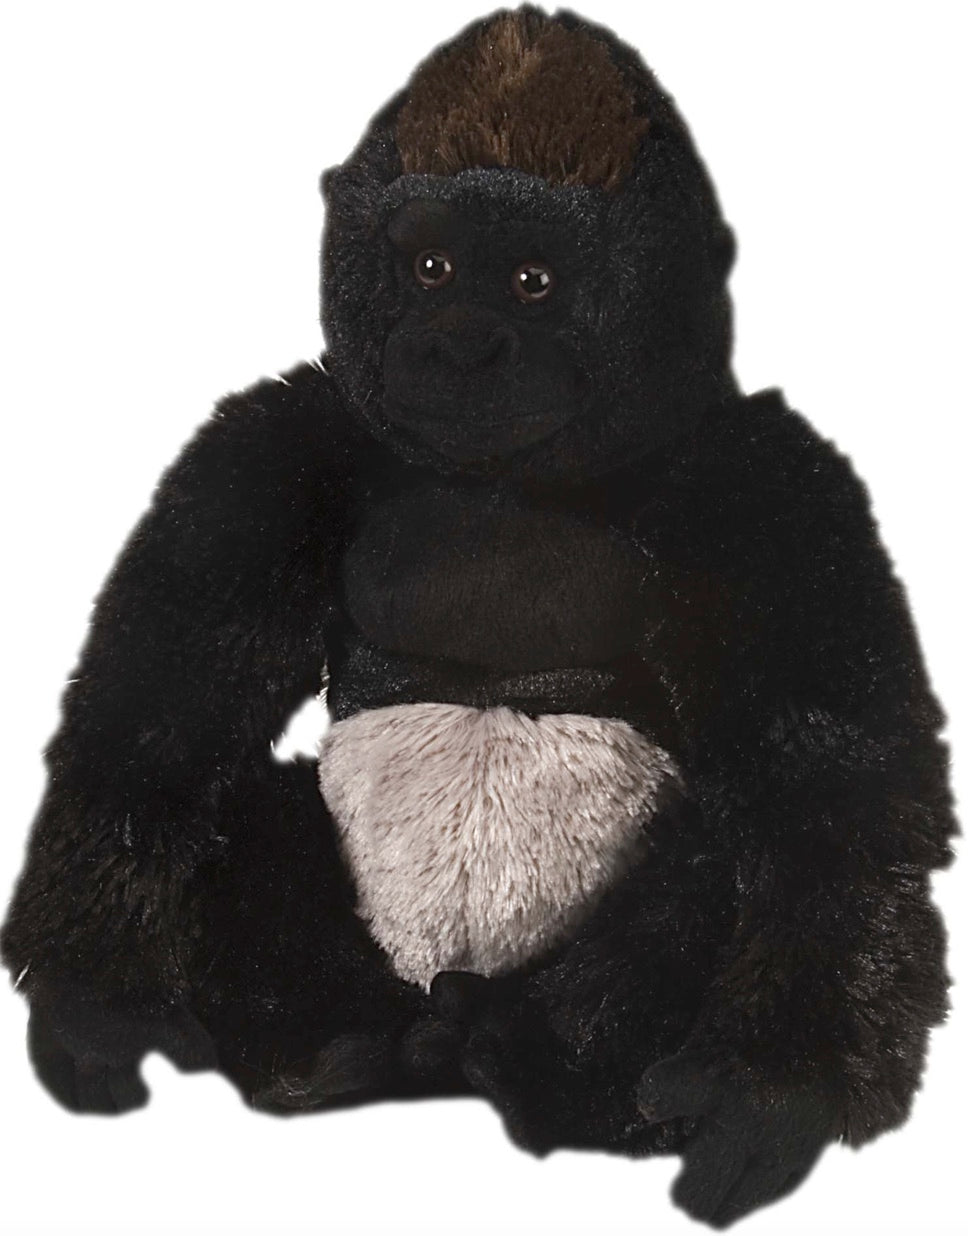 Silverback Gorilla soft plush toy 30cm stuffed animal Wild Republic